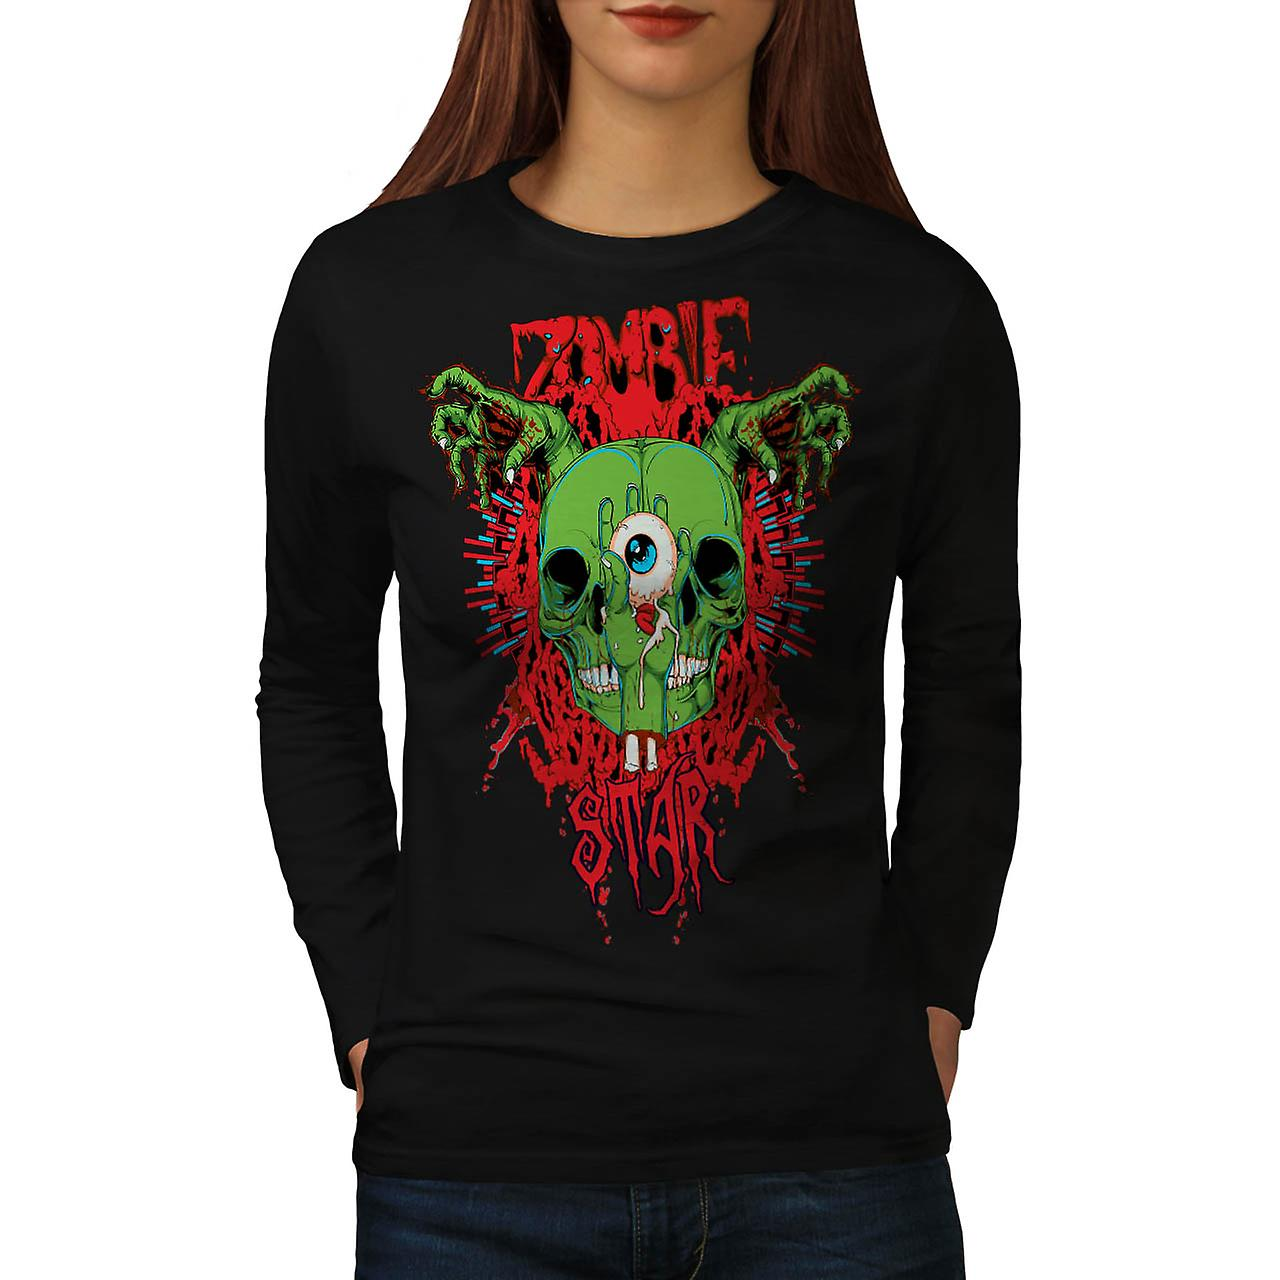 Monster Zombie Evil Star Night Women Black Long Sleeve T-shirt | Wellcoda